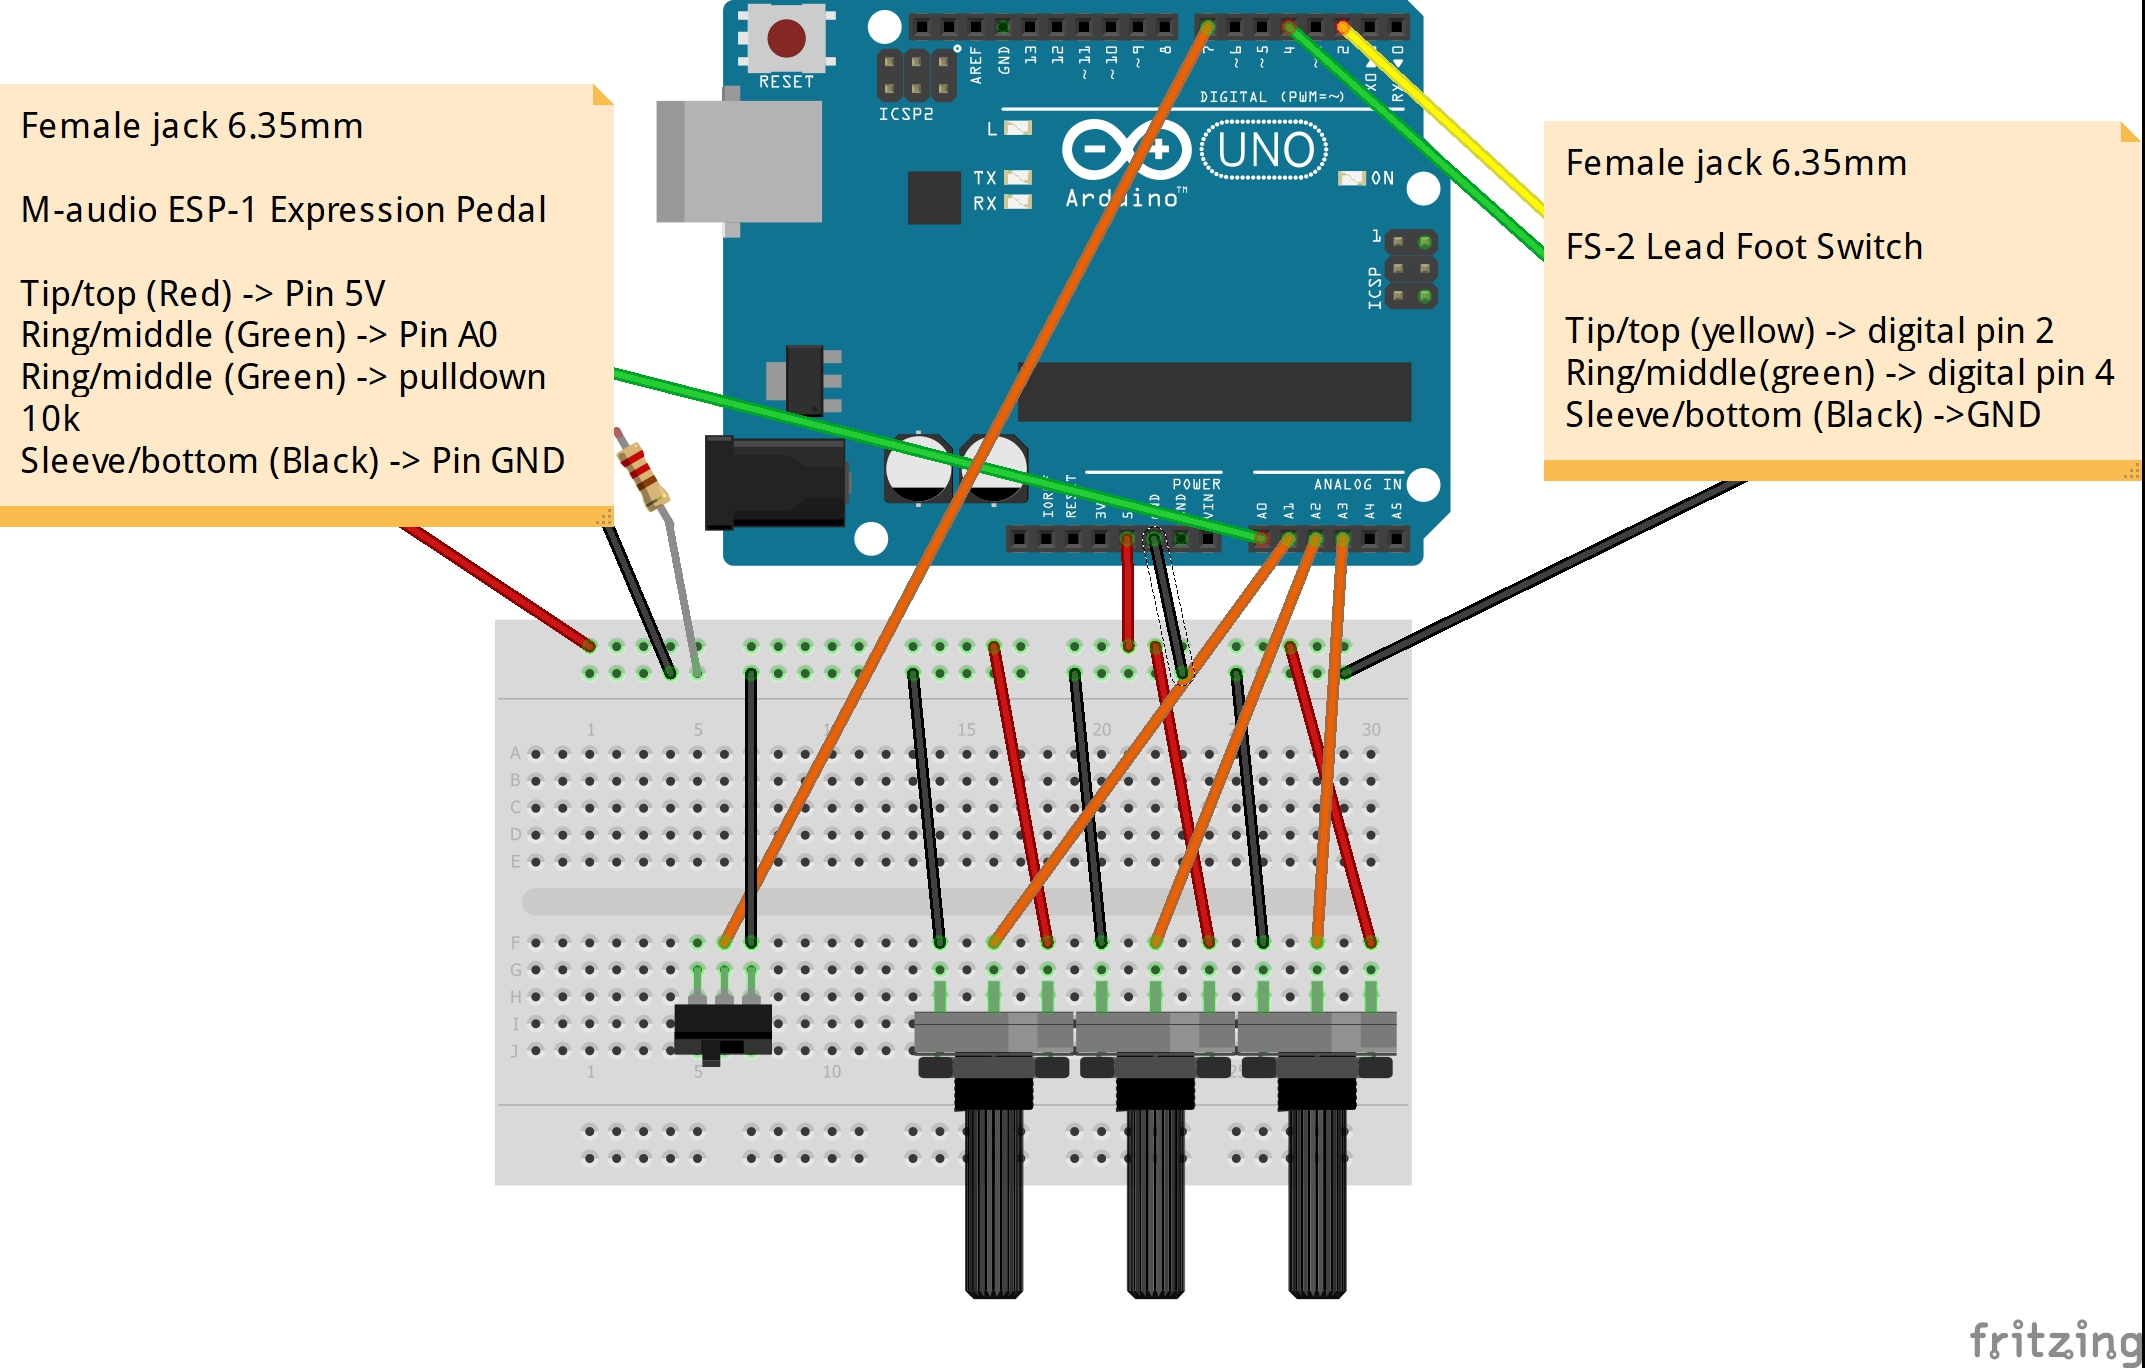 Usb To Midi Wiring Diagram Turn An Arduino Uno Into A Controller Guitar Pedals Foot Iezx0sdzo2